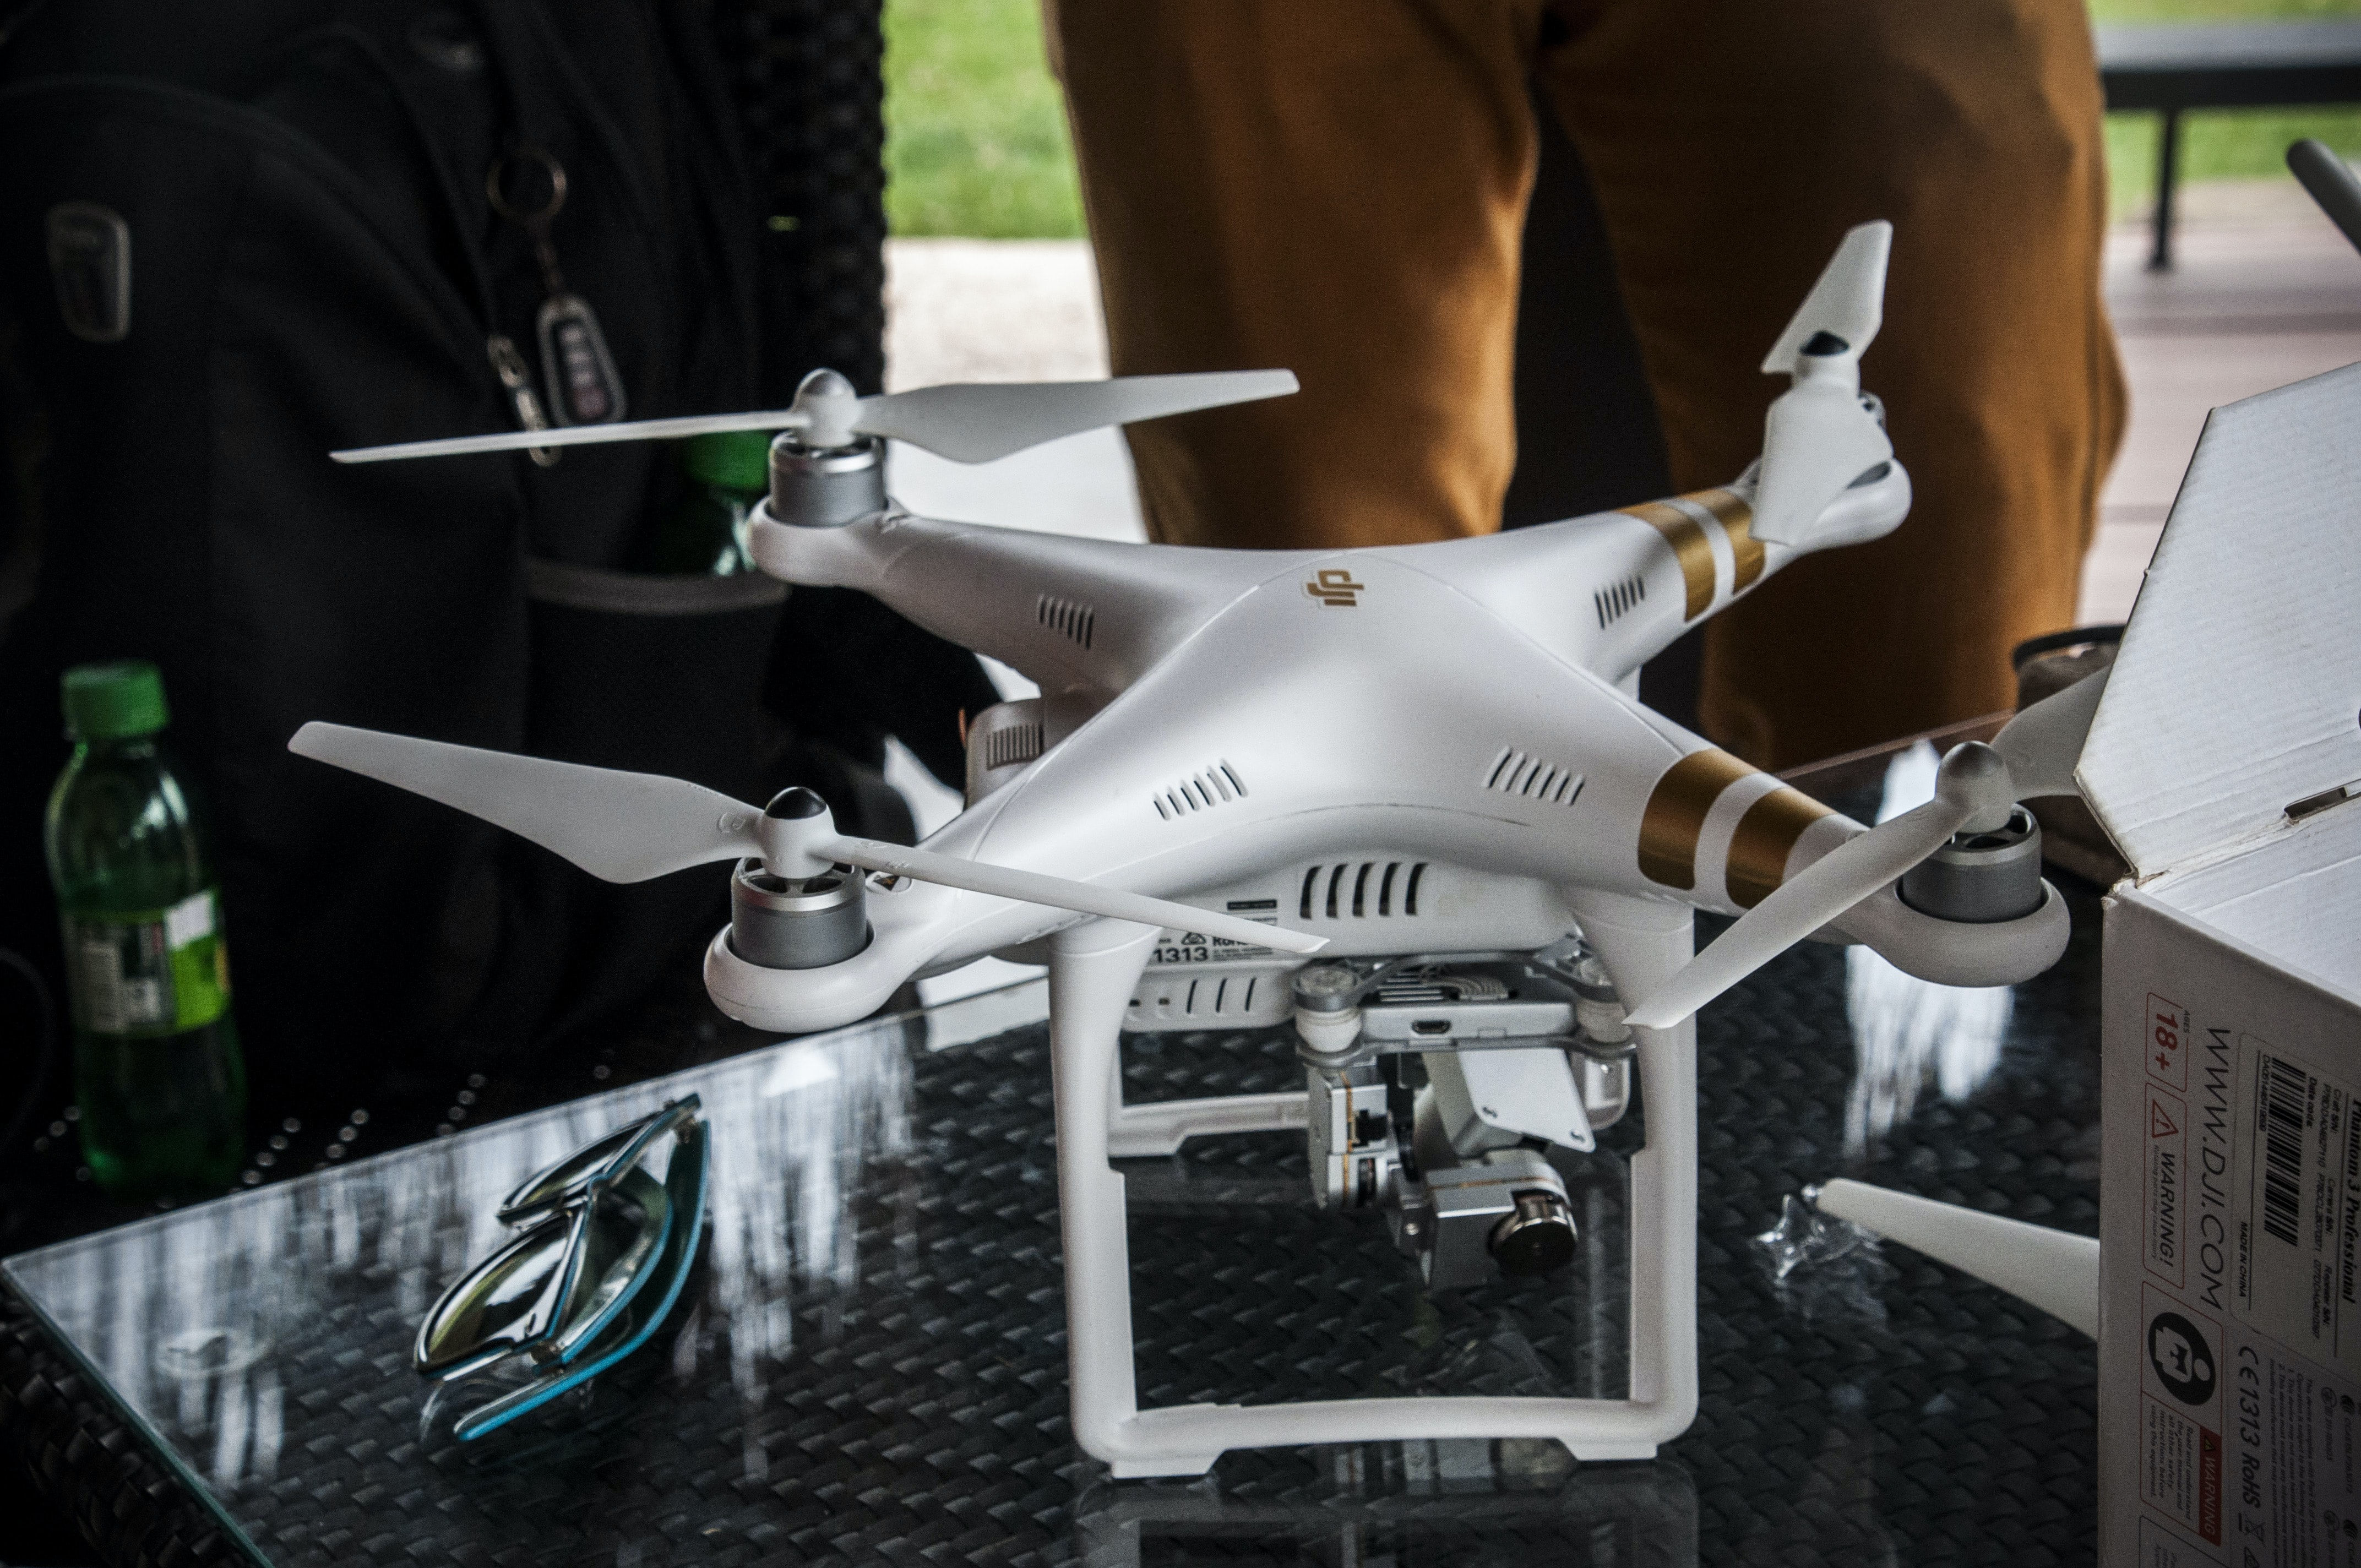 white DJI Phantom 3 Professional